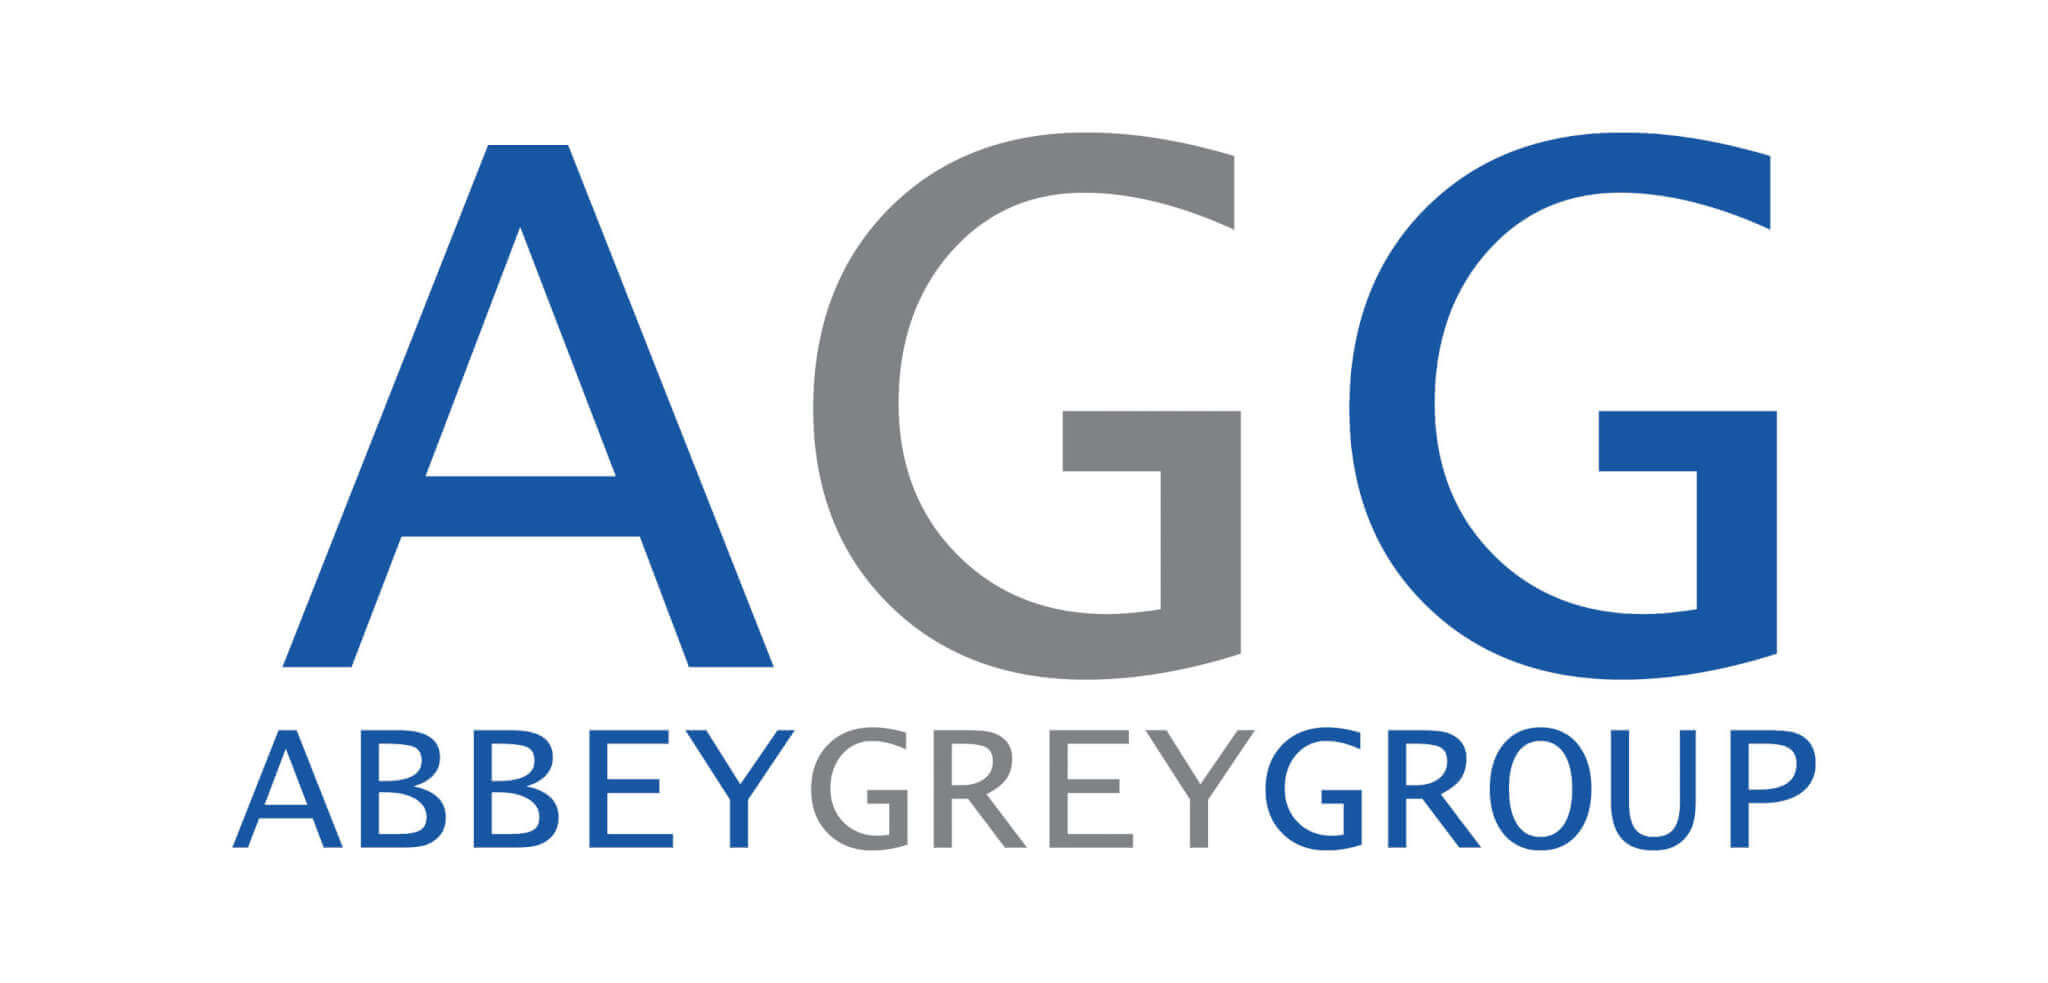 Abbey Grey Group